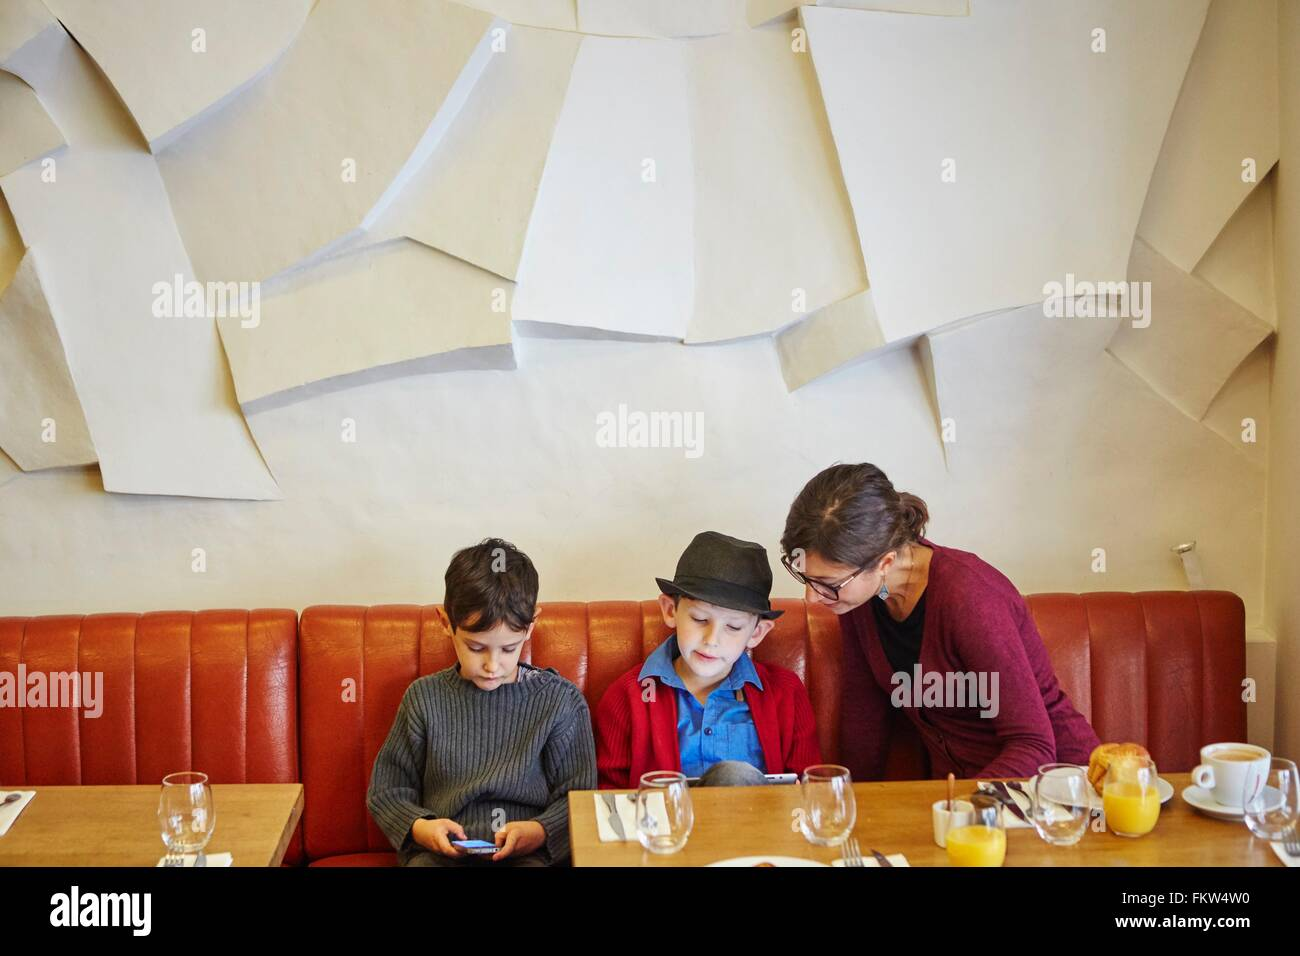 Mother and sons using digital tablet and smartphone in restaurant - Stock Image